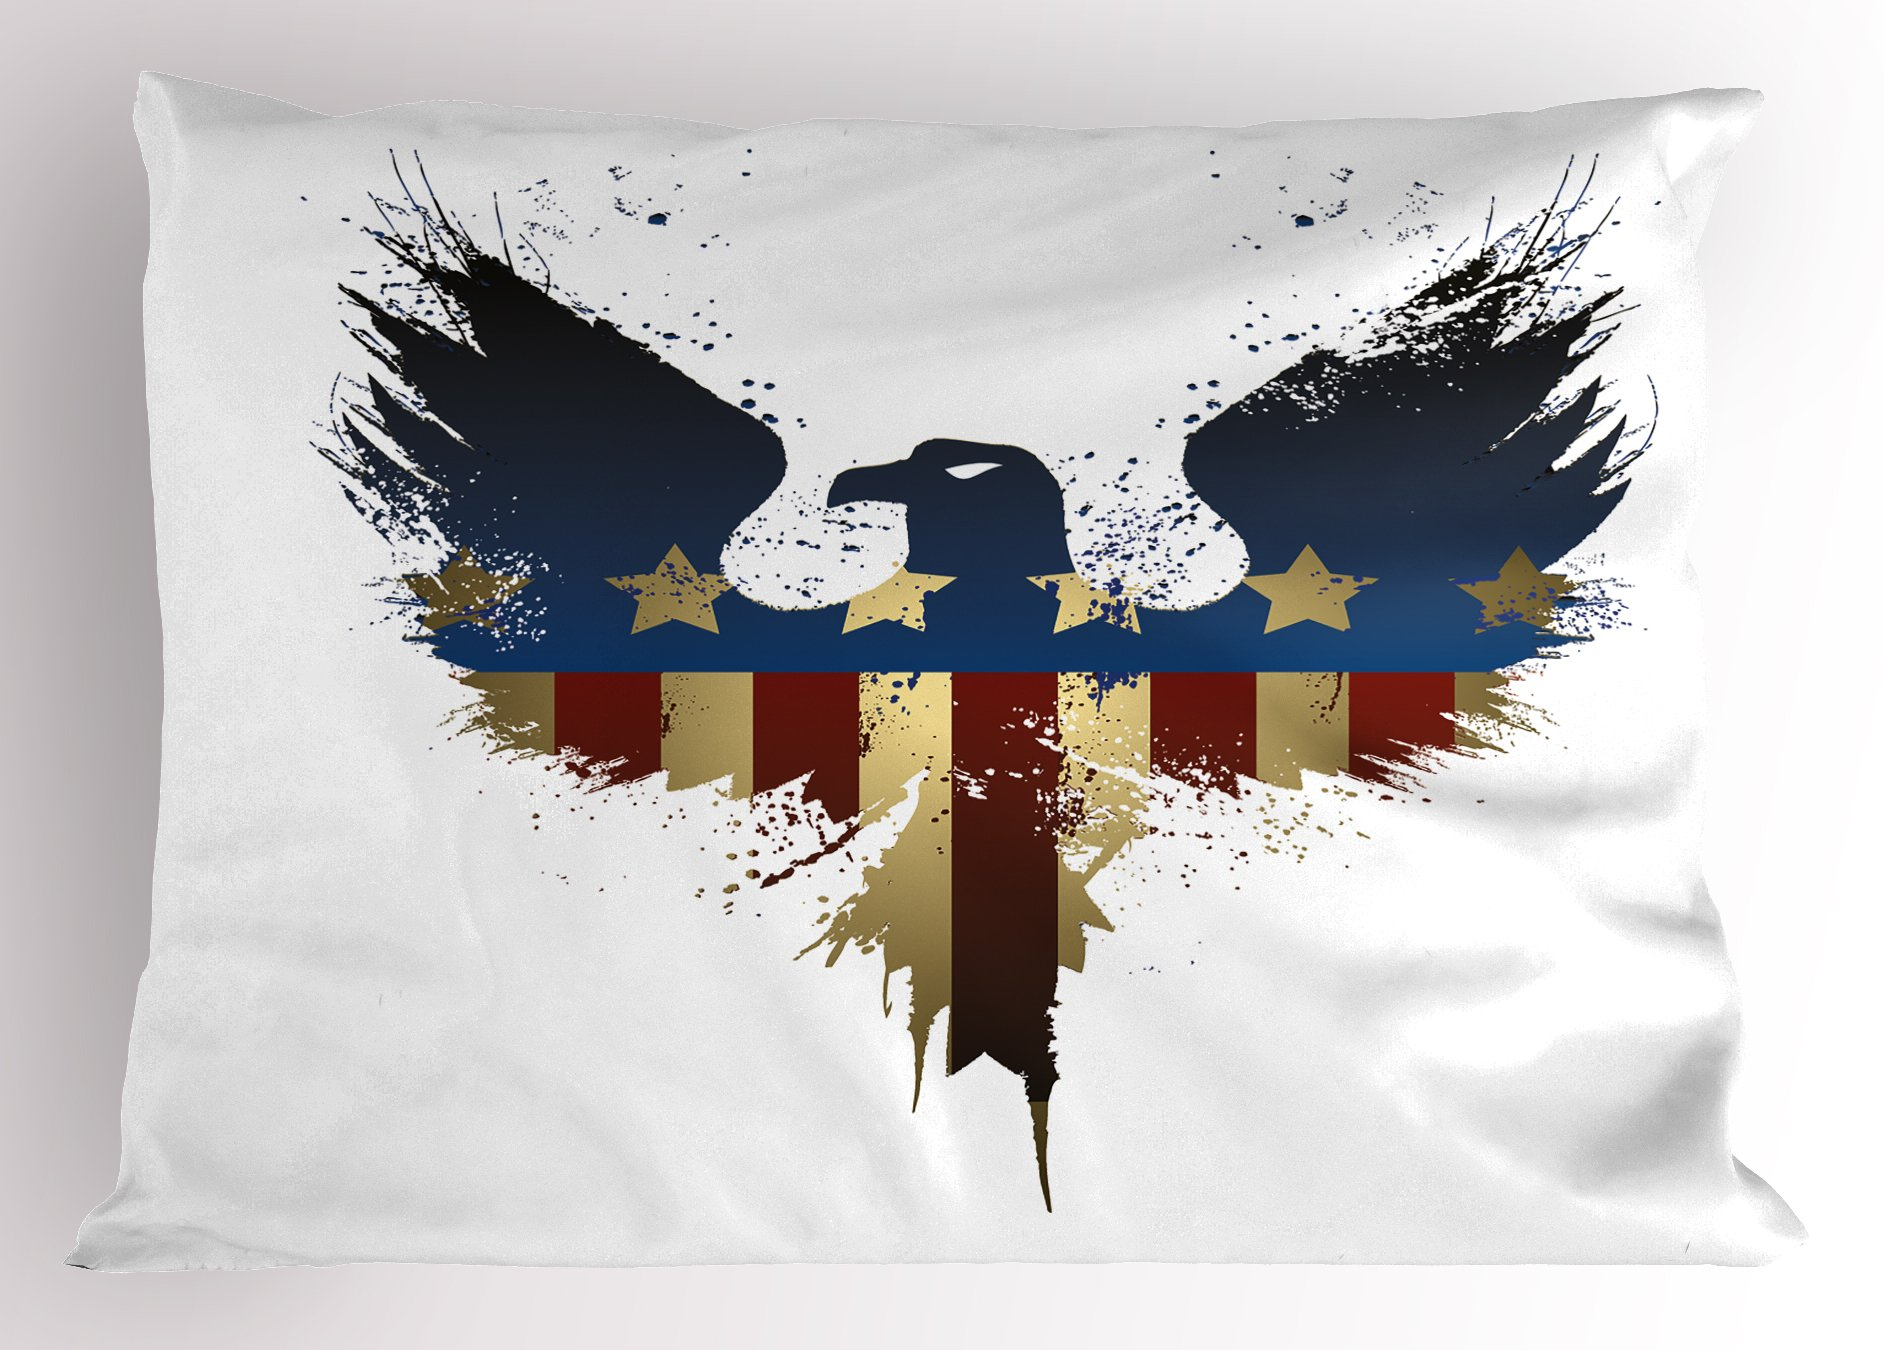 Ambesonne Eagle Pillow Sham, The American Flag on Silhouette of National Bird of The Country Majestic Animal, Decorative Standard Queen Size Printed Pillowcase, 30 X 20 inches, Blue Red Sepia